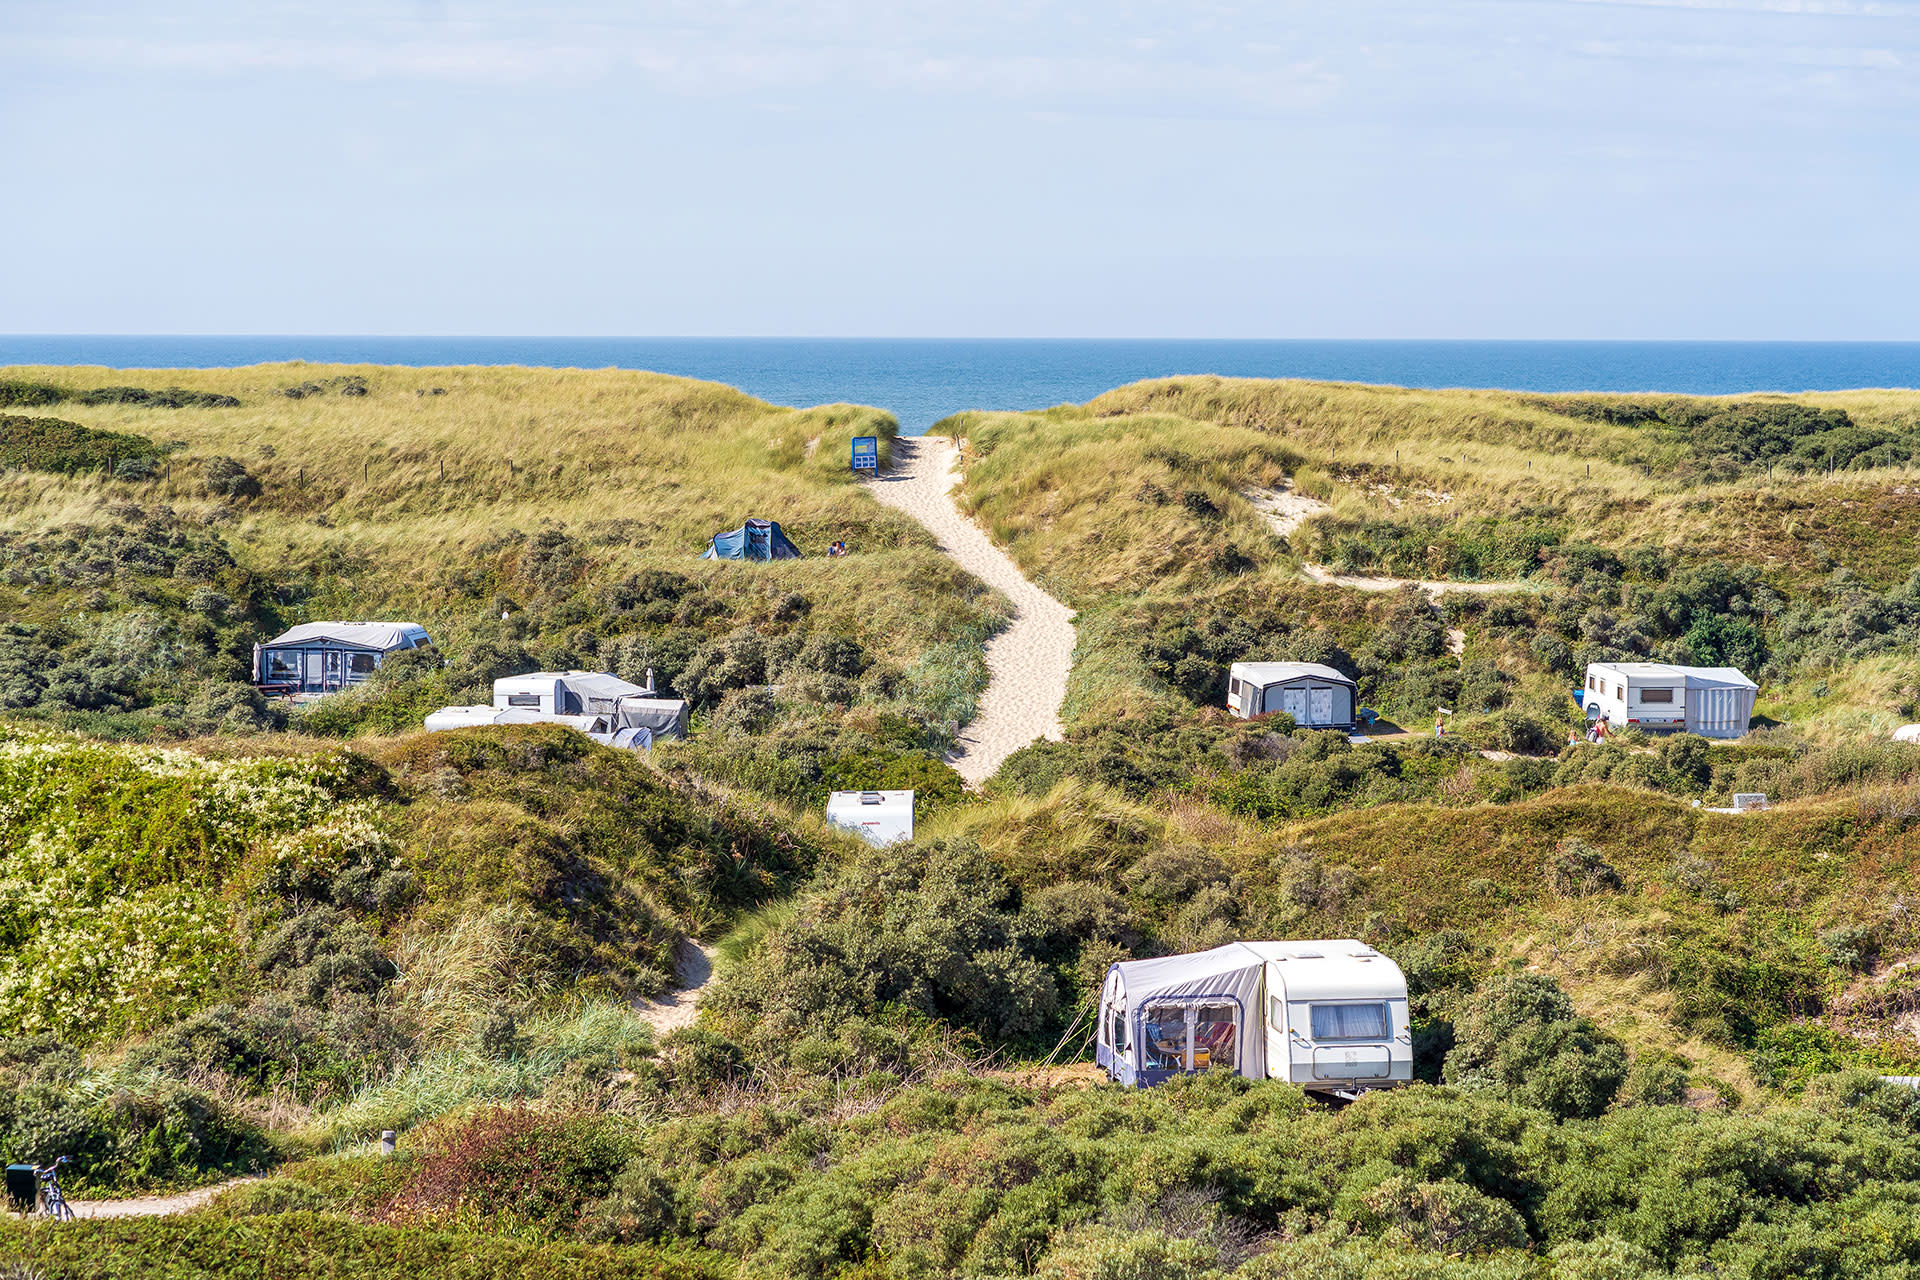 Campsite Kogerstrand: Camping in the dunes of De Koog Texel